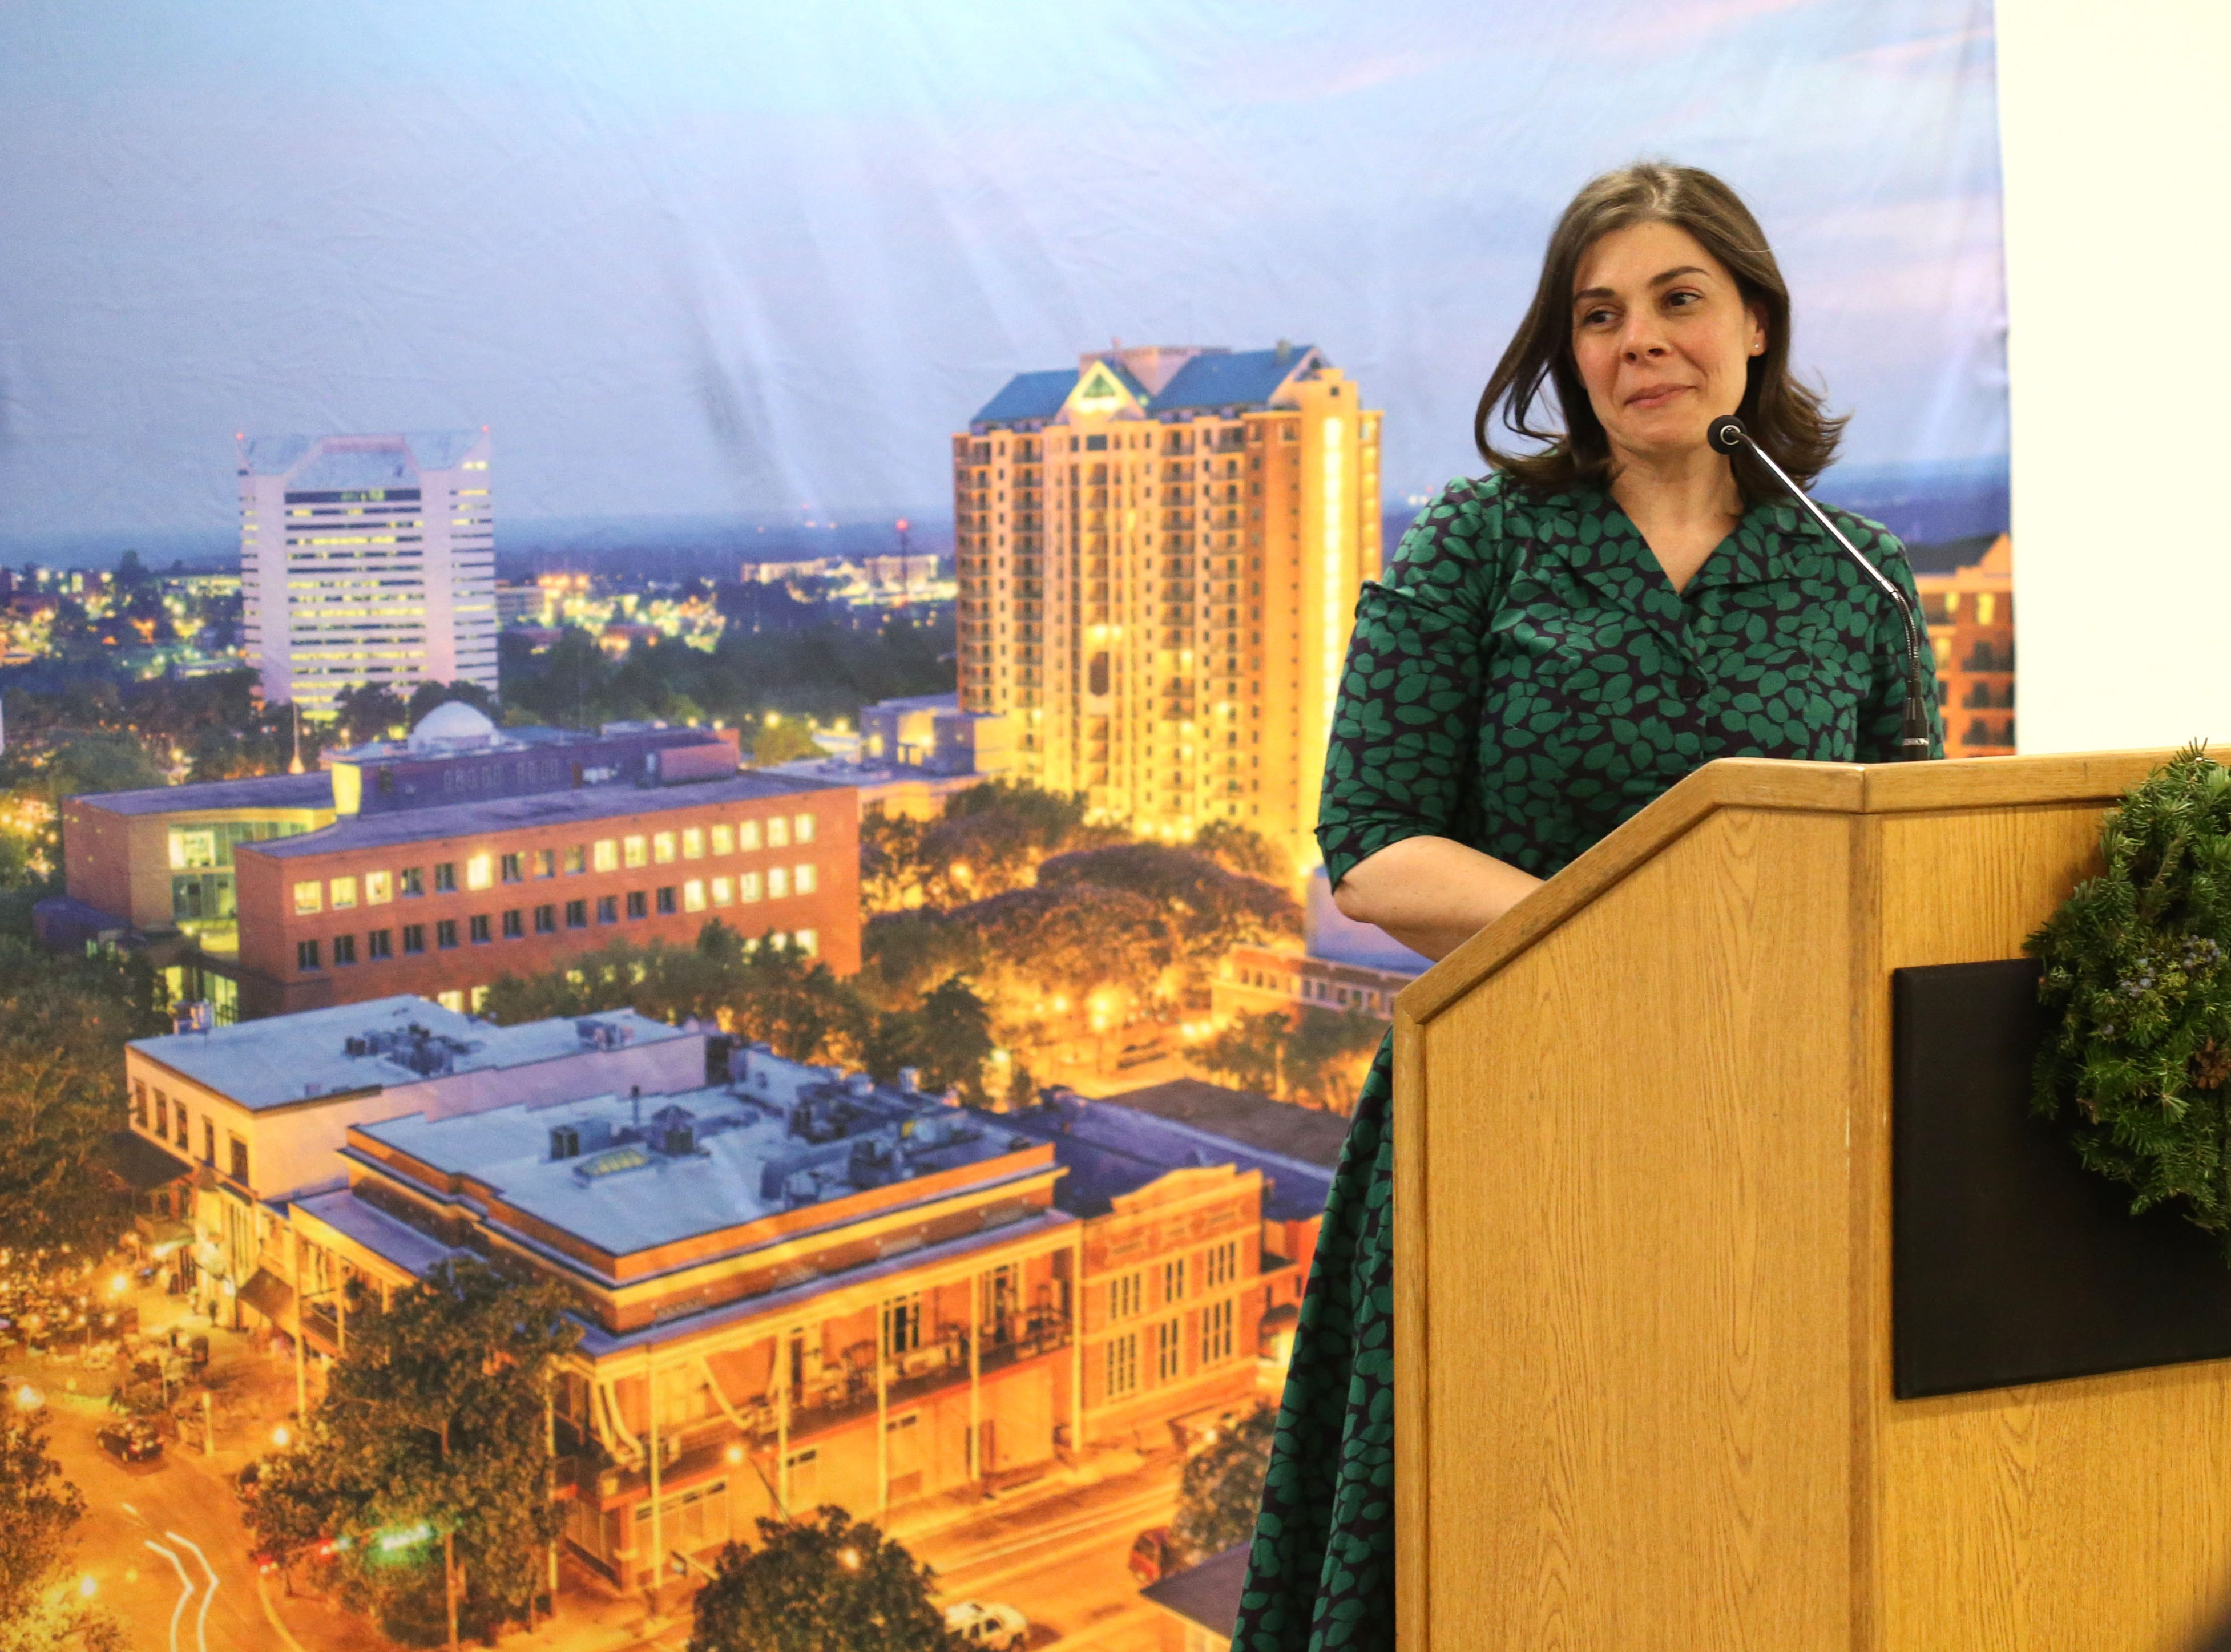 Amanda Karioth Thompson, daughter of Gerald Ensley, speaks at a launch party held at the Tallahassee Democrat for Gerald Ensley's book, 'We Found Paradise,' Thursday, Dec. 6, 2018.